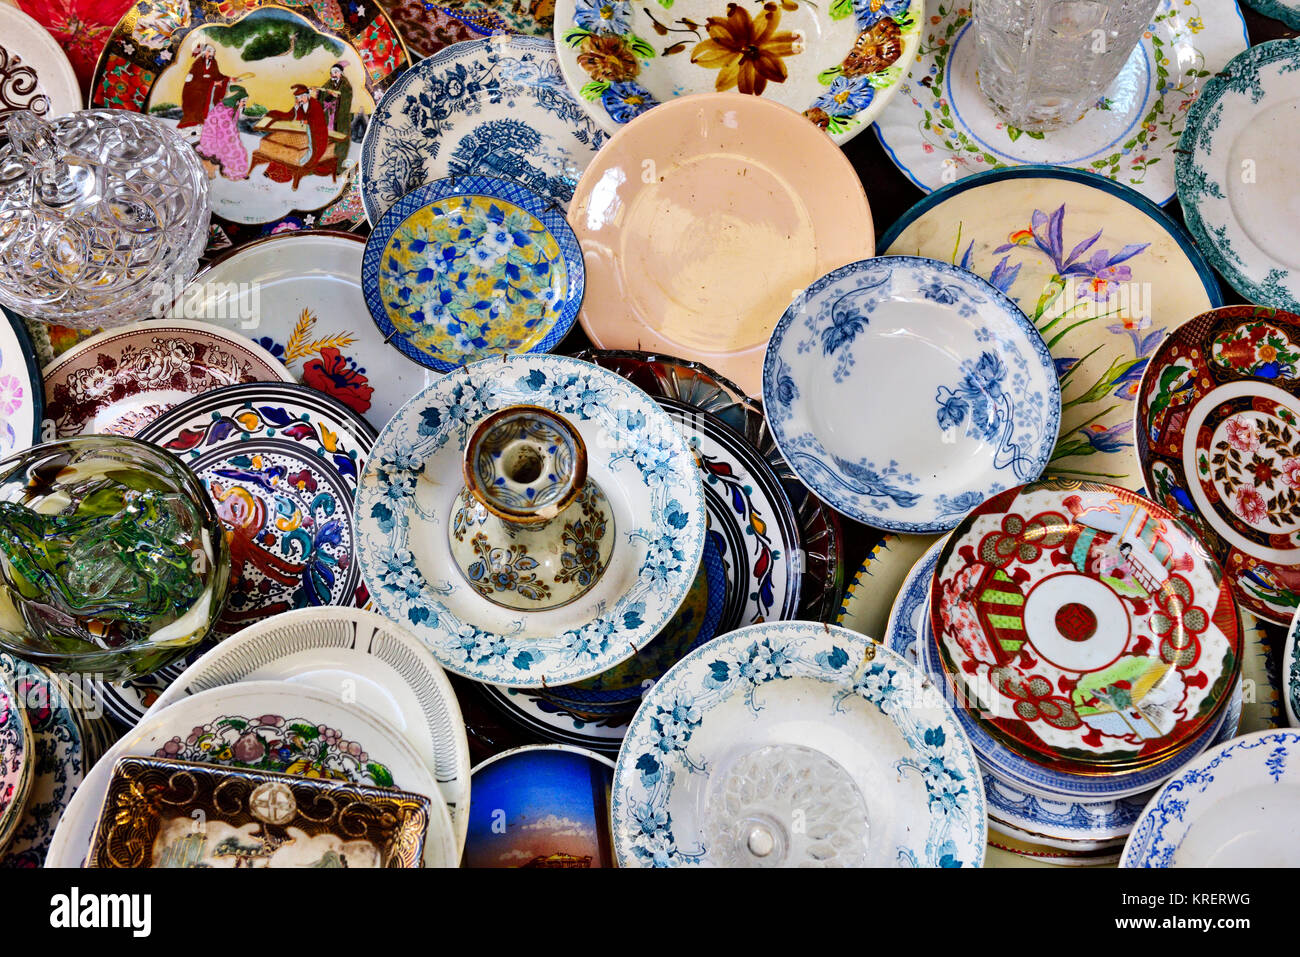 Antique and old plates and dishes on bric-a-brac flea market stall ...